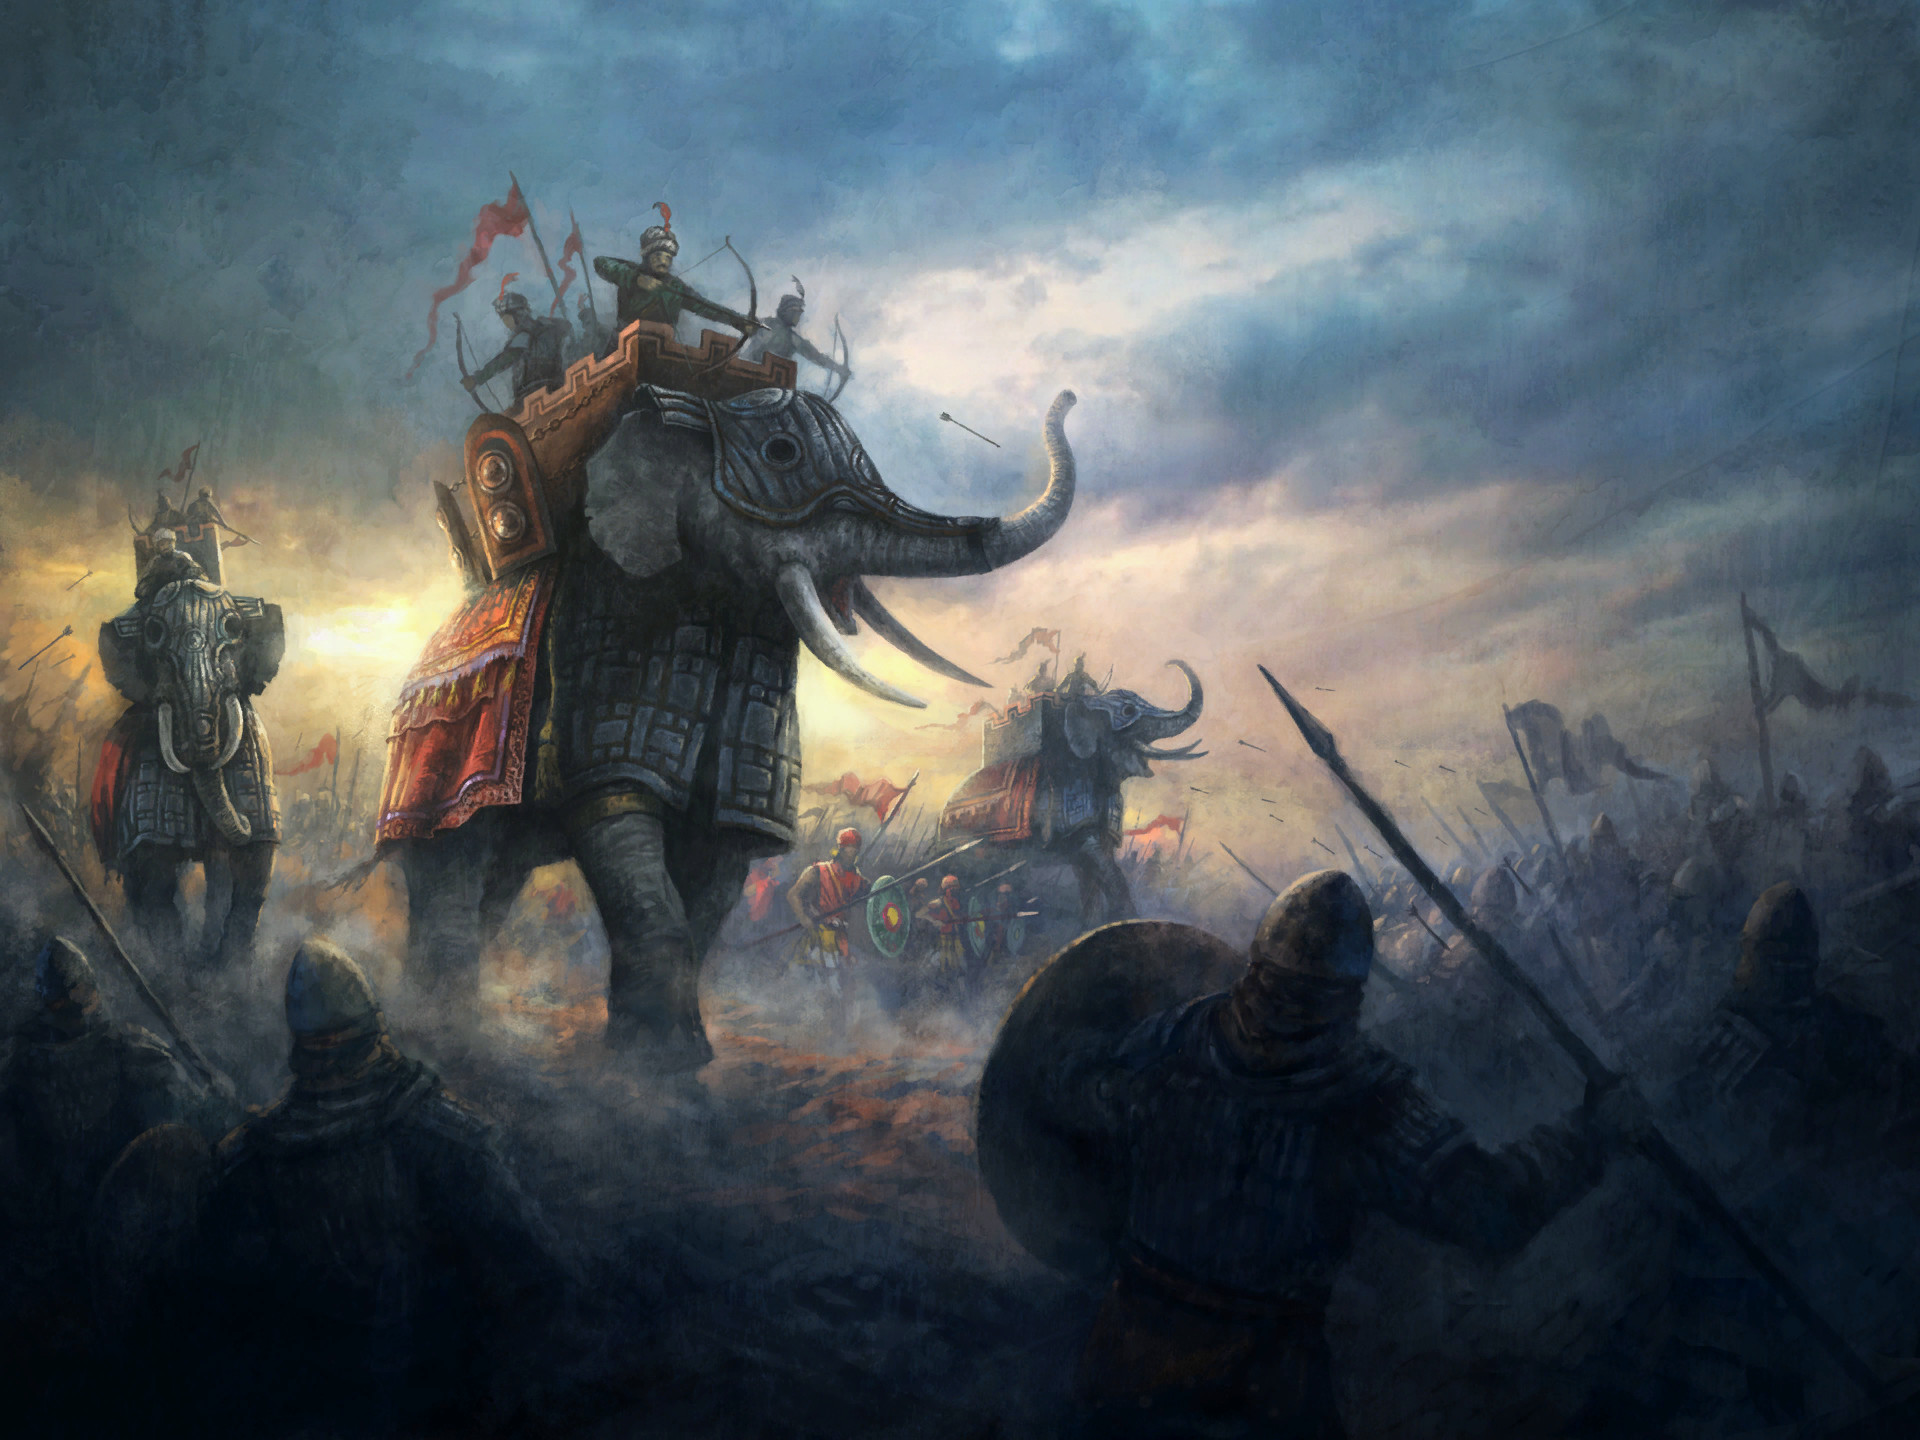 https://news.softpedia.com/news/Exclusive-Crusader-Kings-II-Rajas-of-India-Interview-with-Project-Lead-Henrik-Fahraeus-429067.shtml.  Cheers,